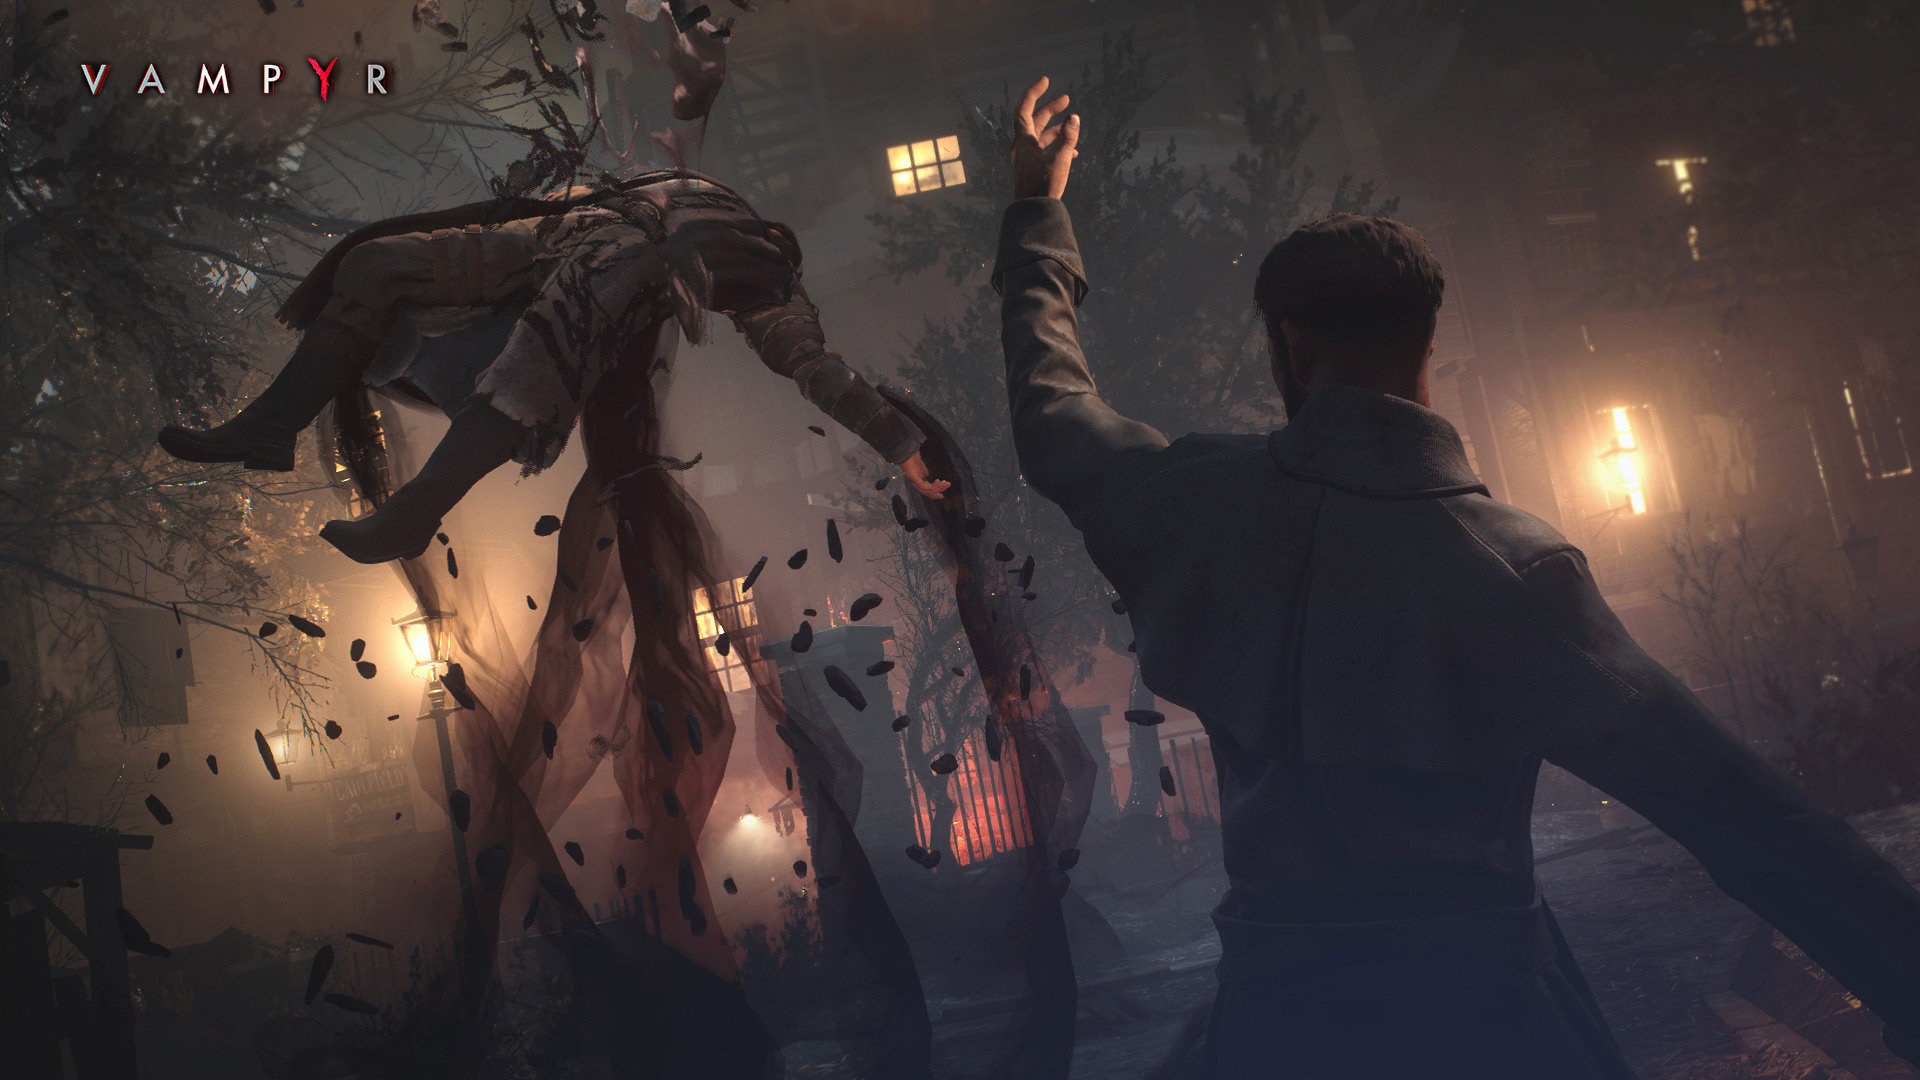 vampyr-screen-04-ps4-us-04may18?$MediaCa